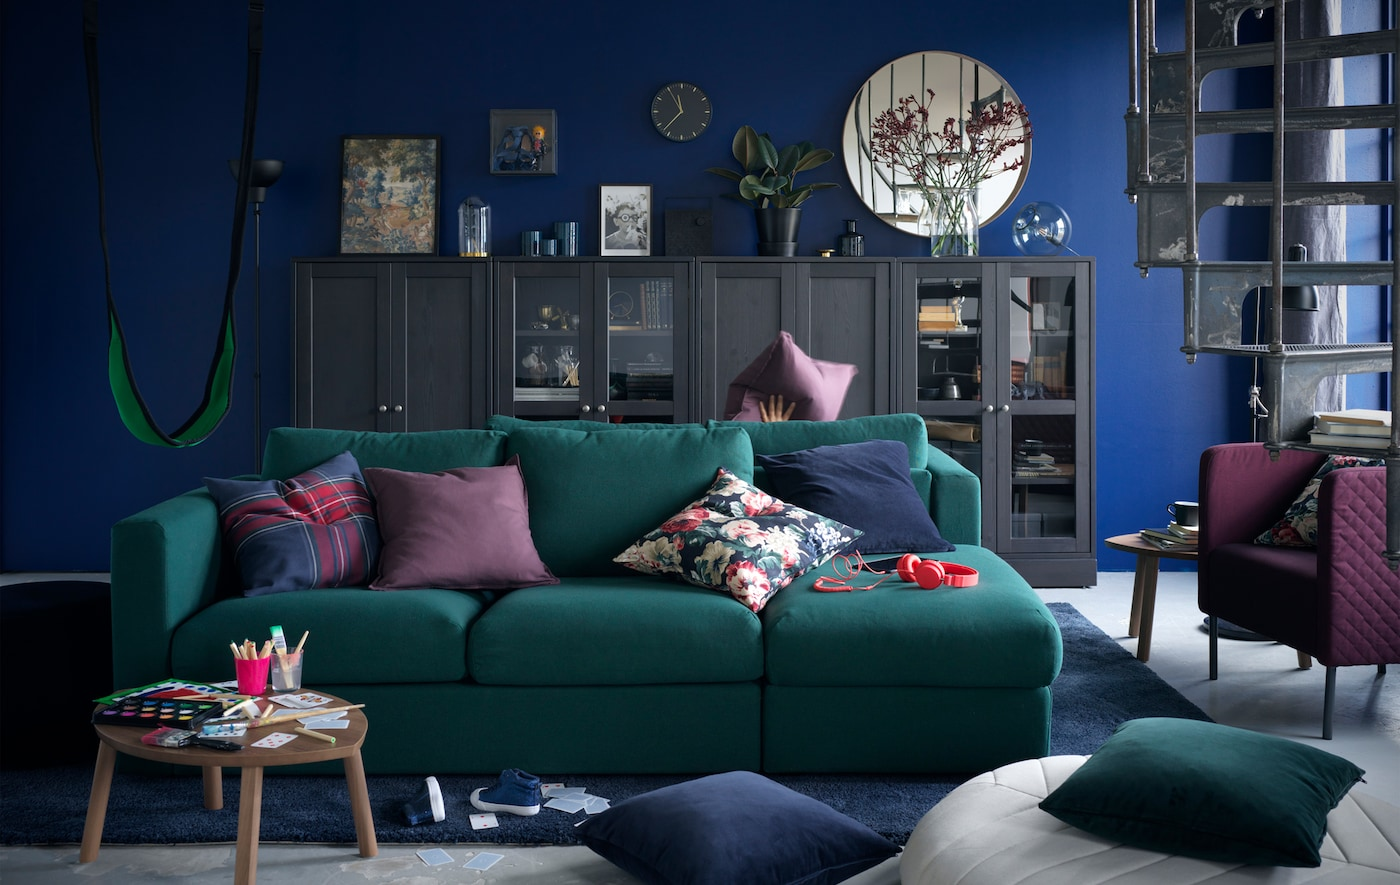 A dark green IKEA VIMLE sofa serves as a centrepiece for the living room.